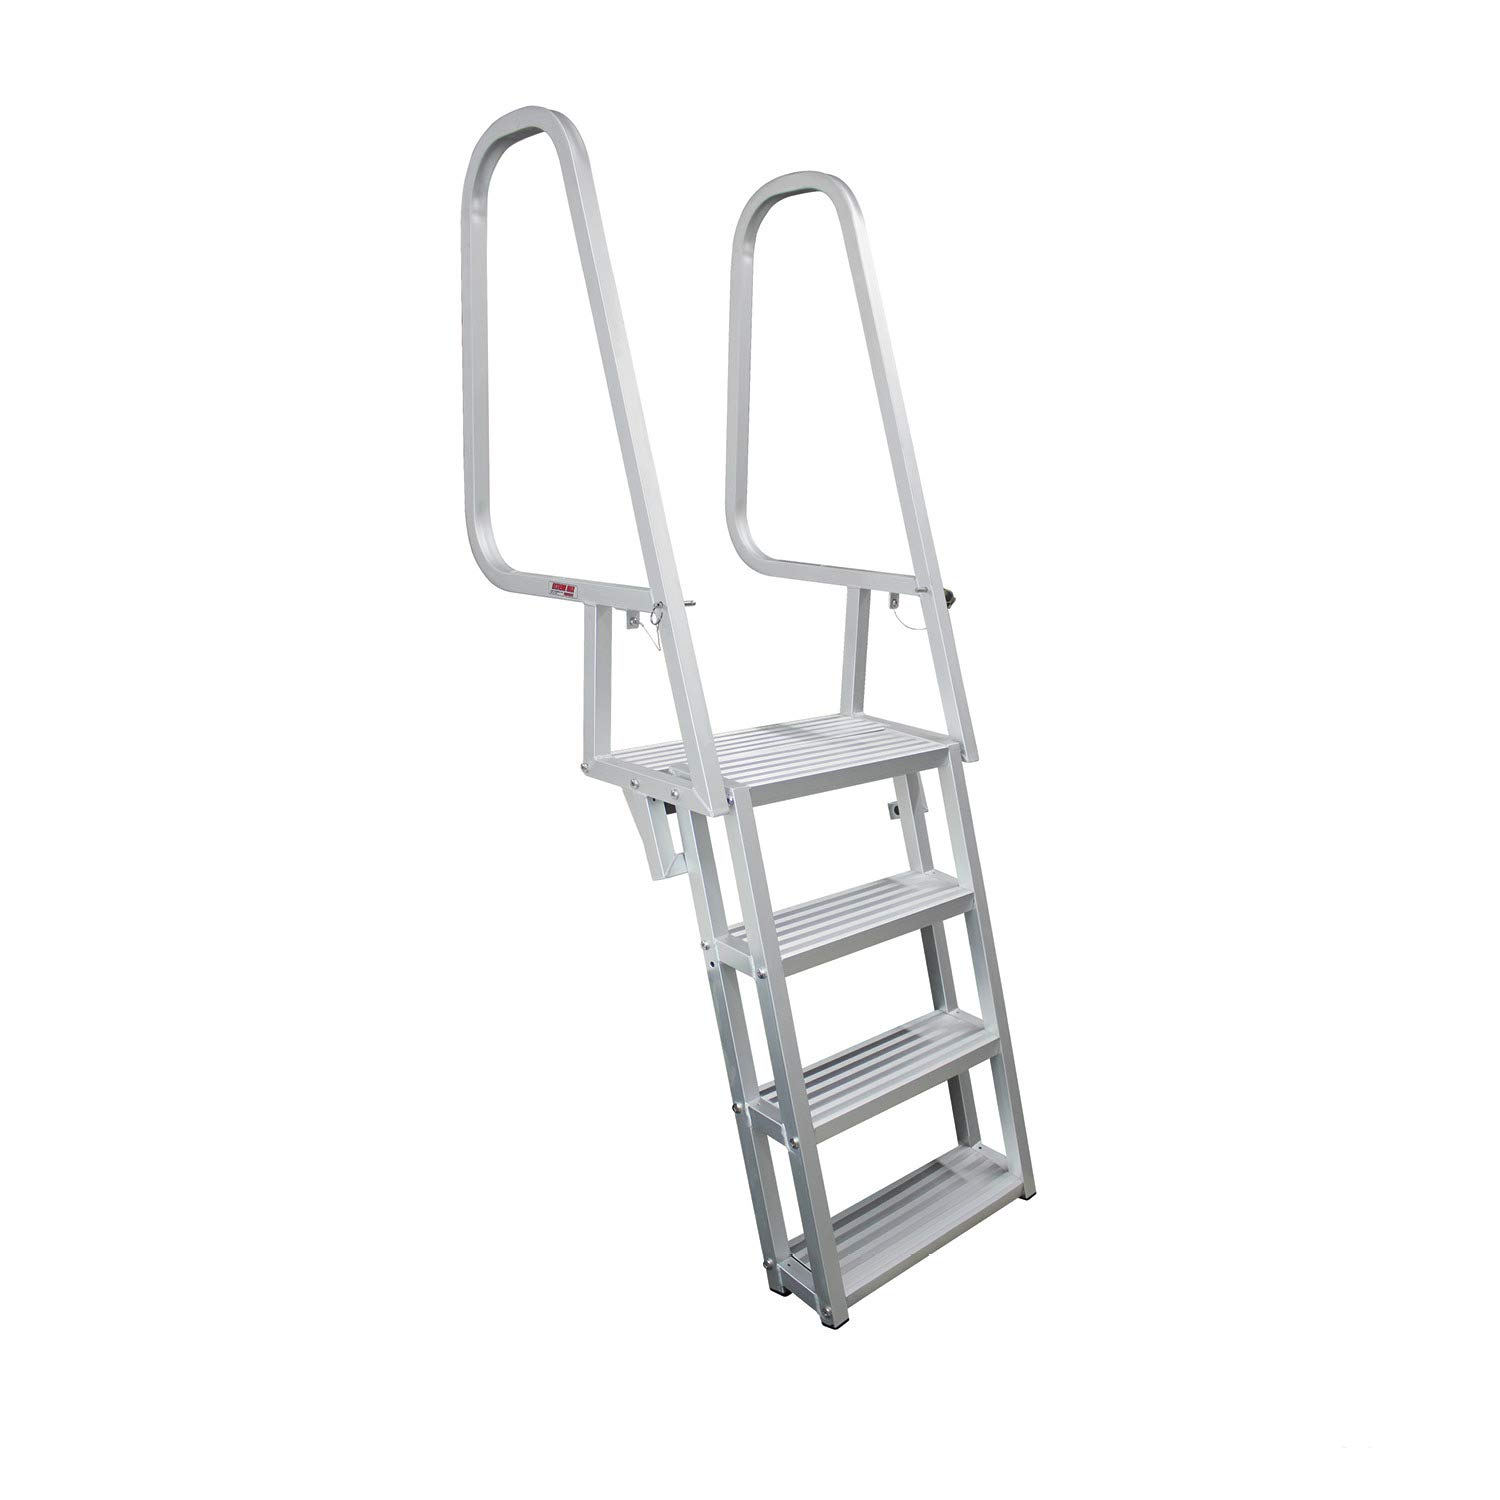 Extreme Max 3005.4116 Deluxe Flip-Up Dock Ladder - 4-Step